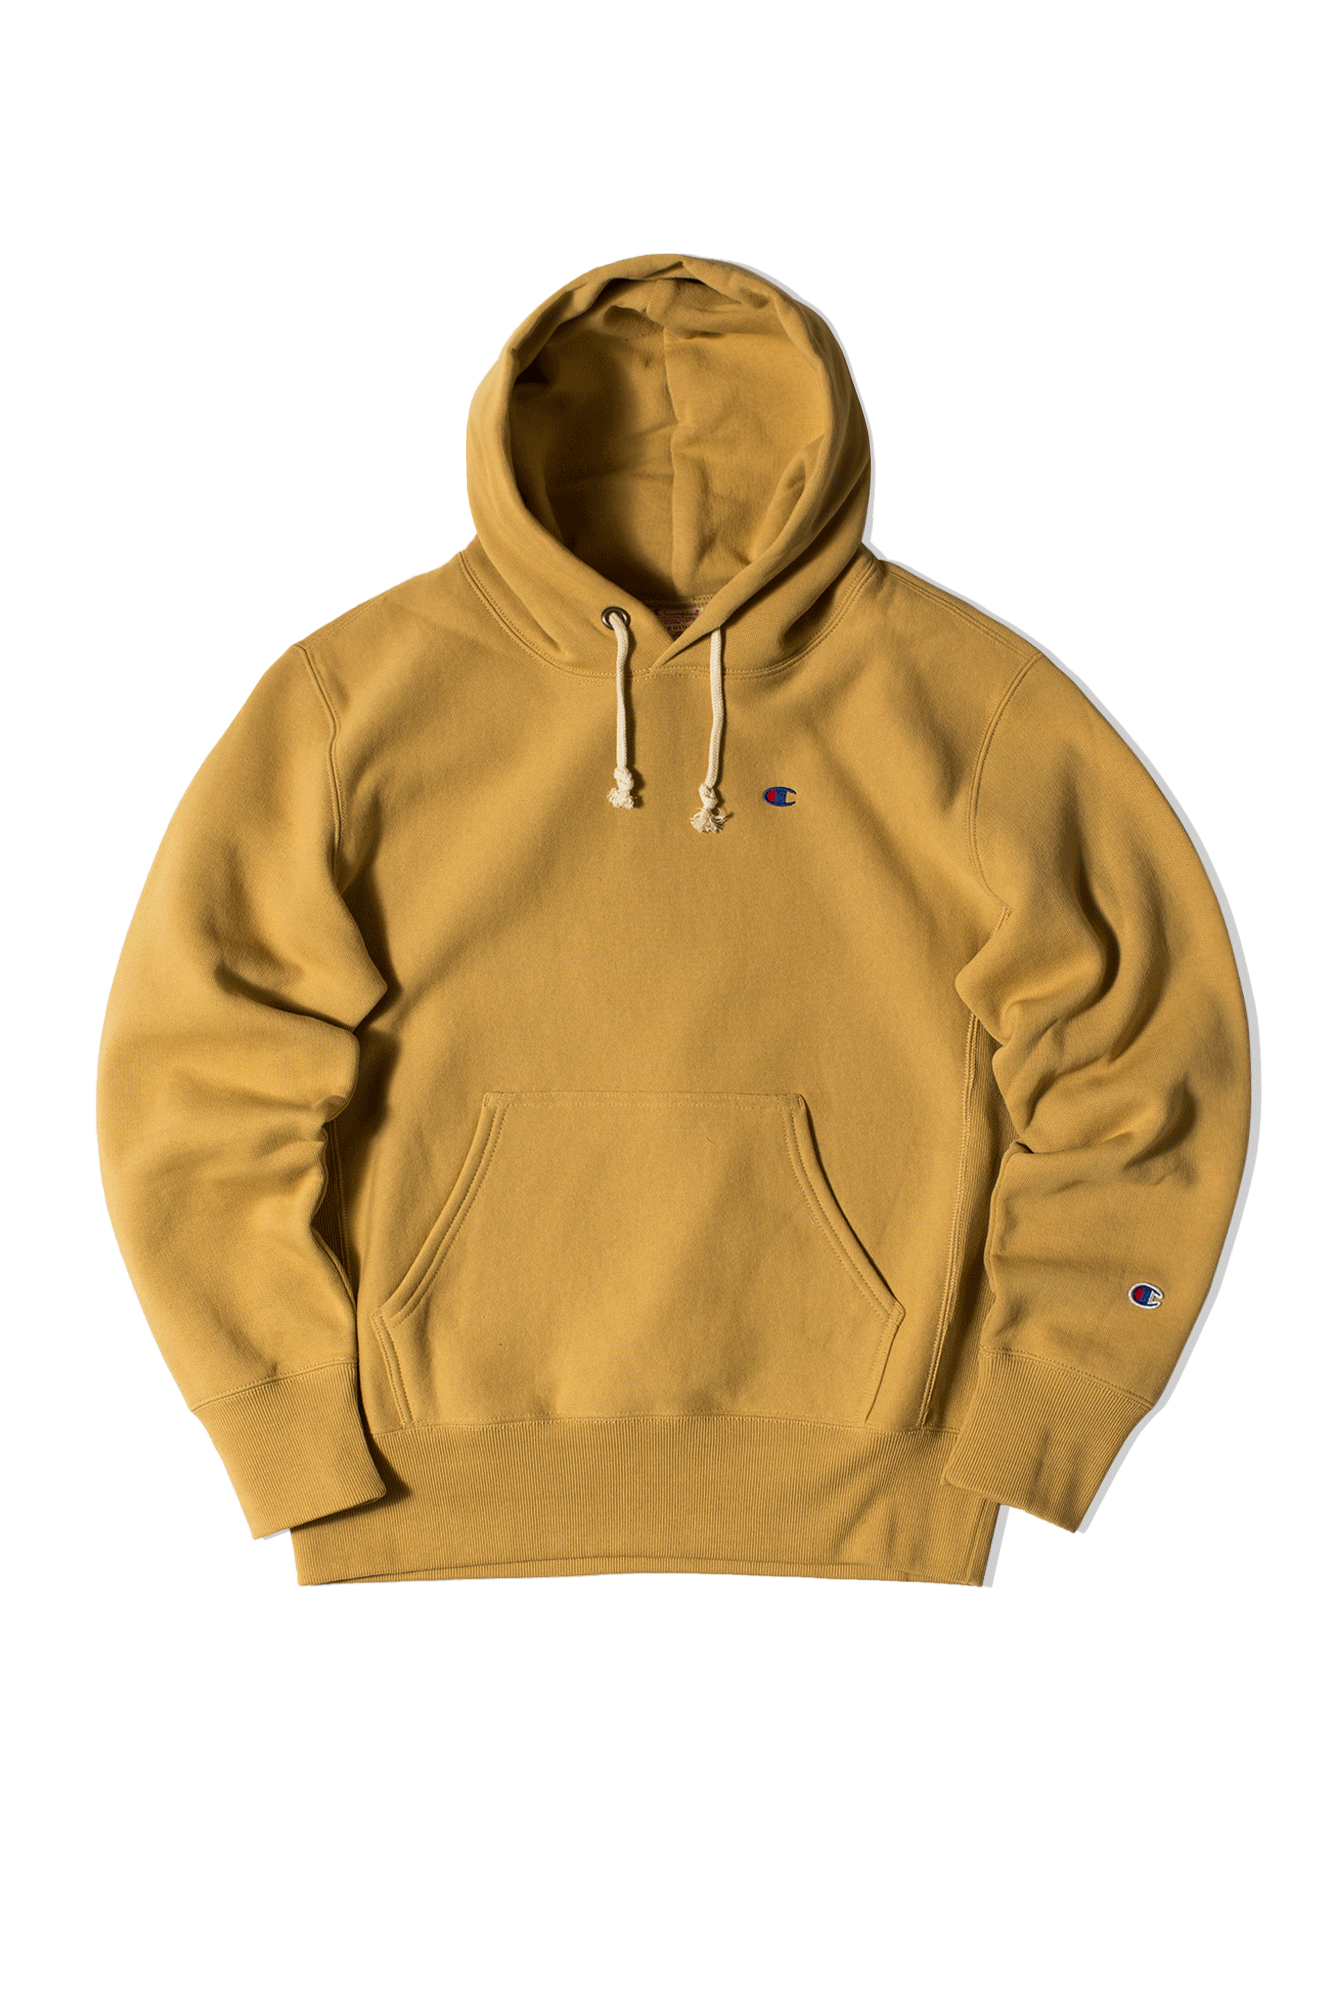 Hooded sweatshirt Giallo